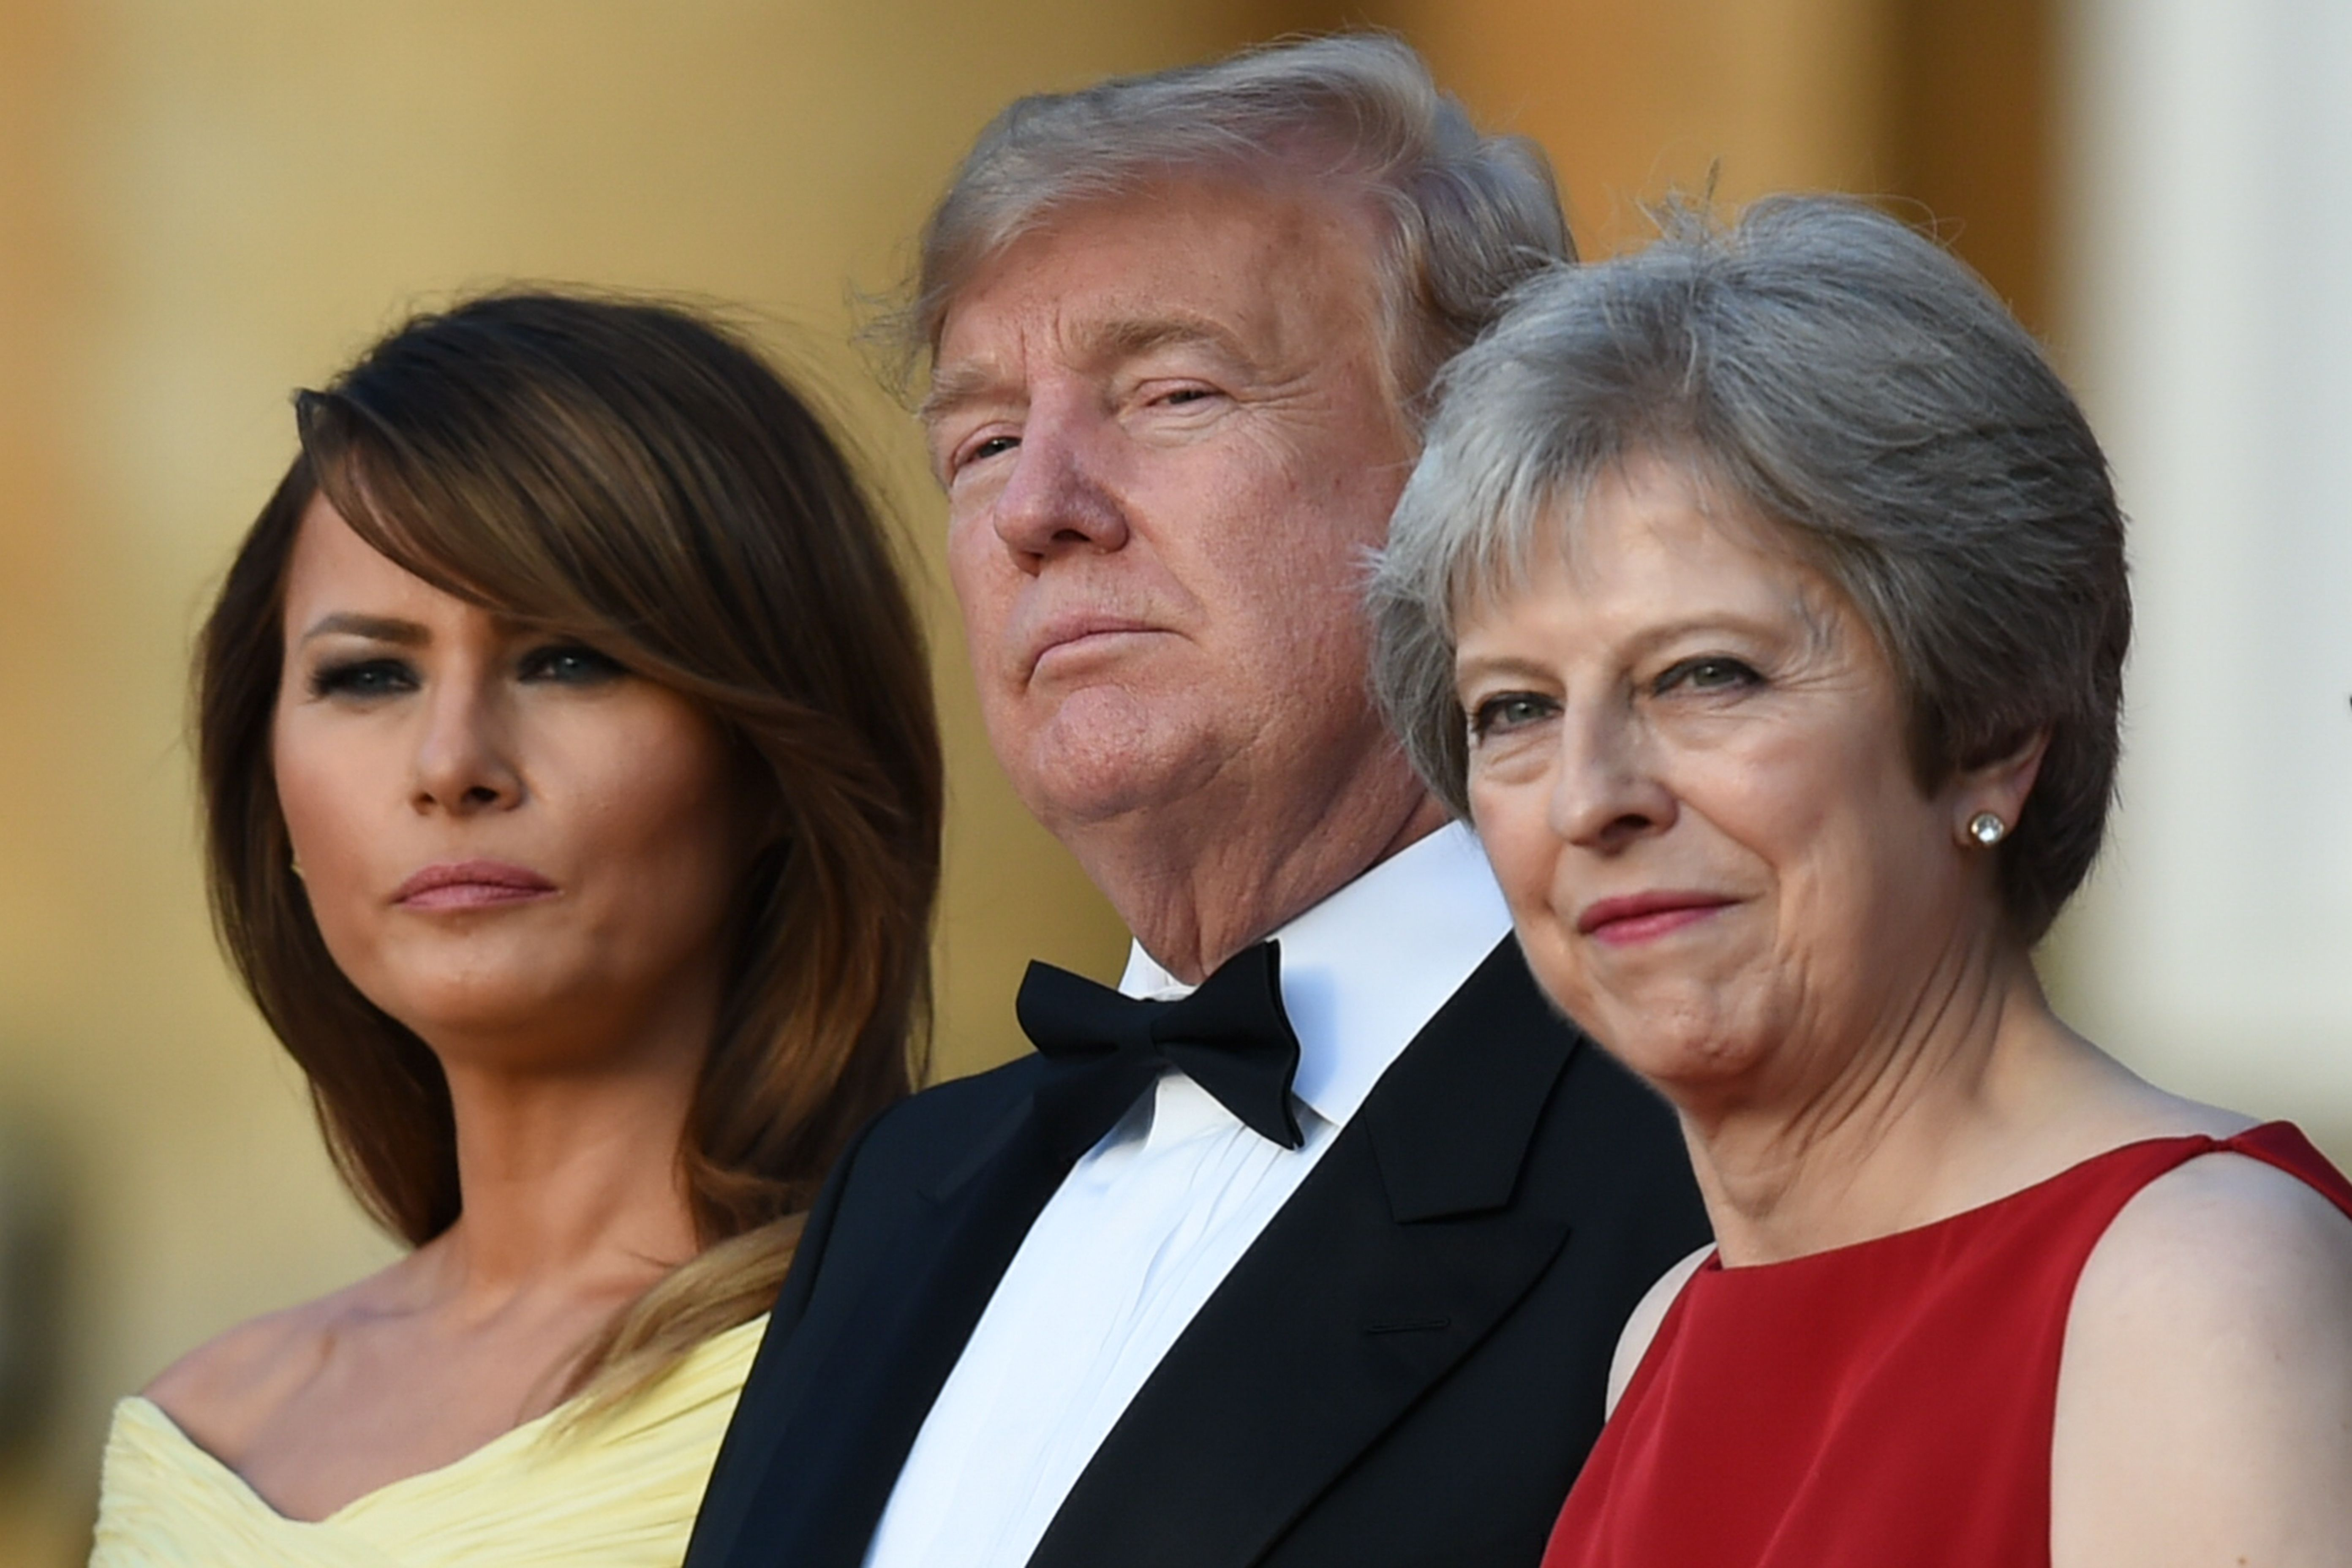 US First Lady Melania Trump, US President Donald Trump and Britain's Prime Minister Theresa May stand on steps in the Great Court as the bands of the Scots, Irish and Welsh Guards perform a ceremonial welcome as they arrive for a black-tie dinner with business leaders at Blenheim Palace, west of London, on July 12, 2018, on the first day of President Trump's visit to the UK. (GEOFF PUGH/AFP/Getty Images)